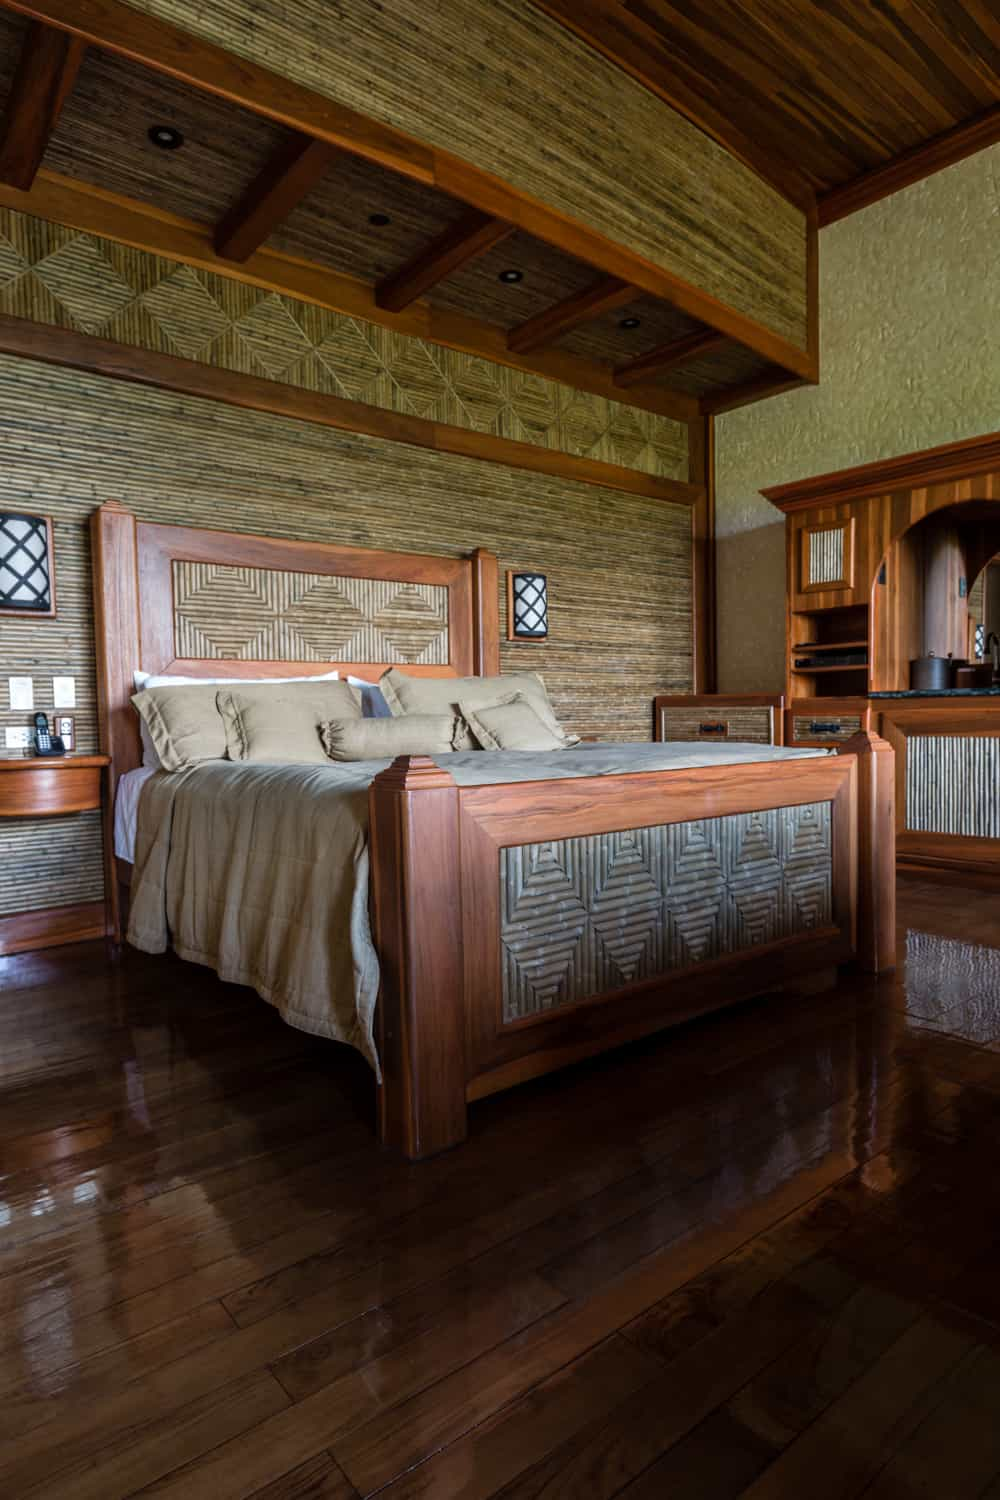 King bed in guest room with wood floors and ceilings.